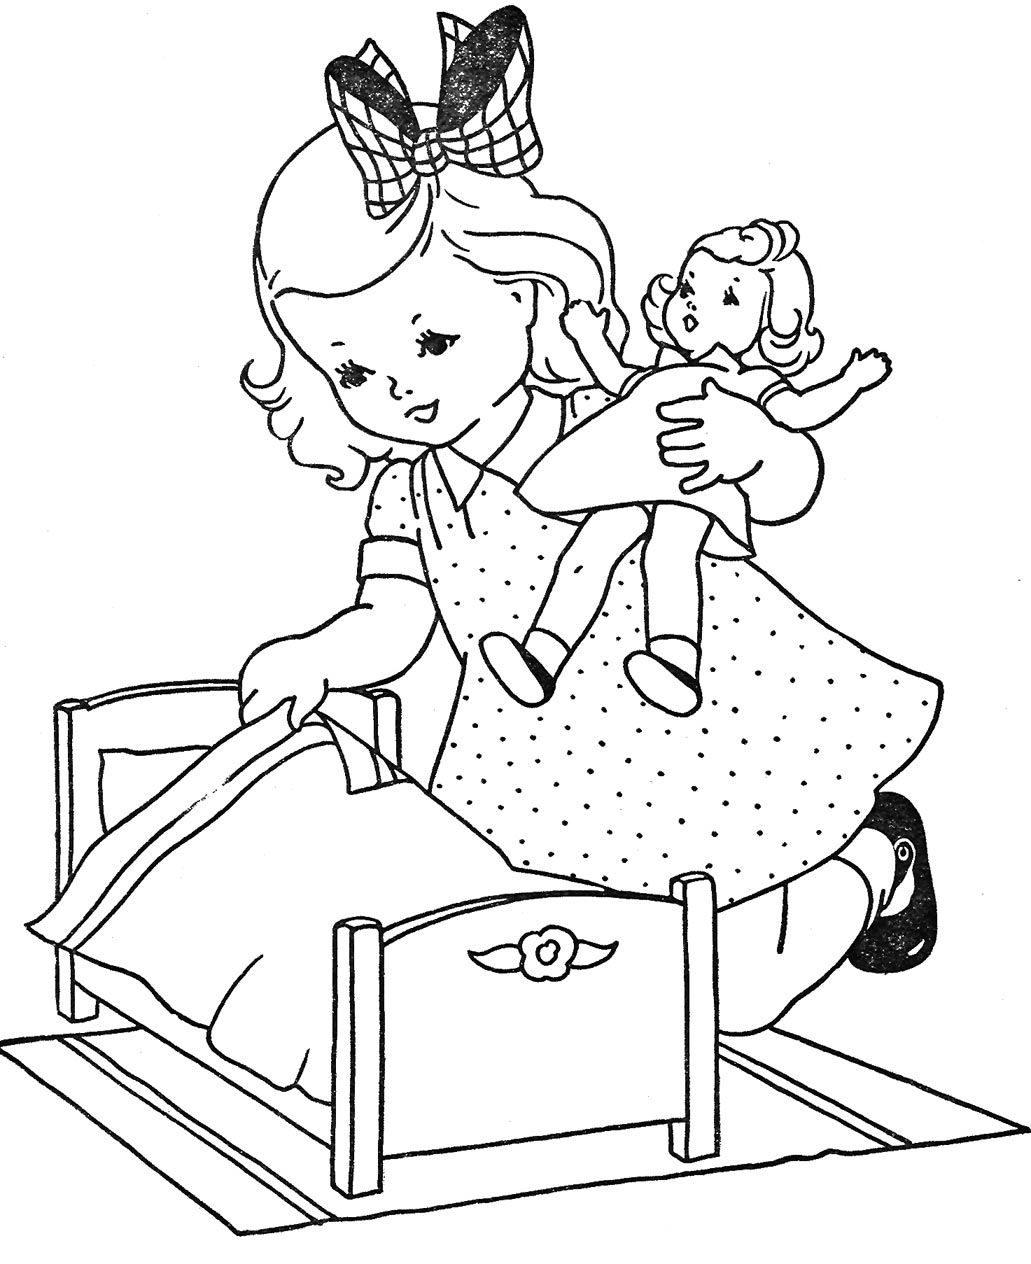 printable coloring sheets for girls 40 free coloring pages for girls printable sheets for girls coloring